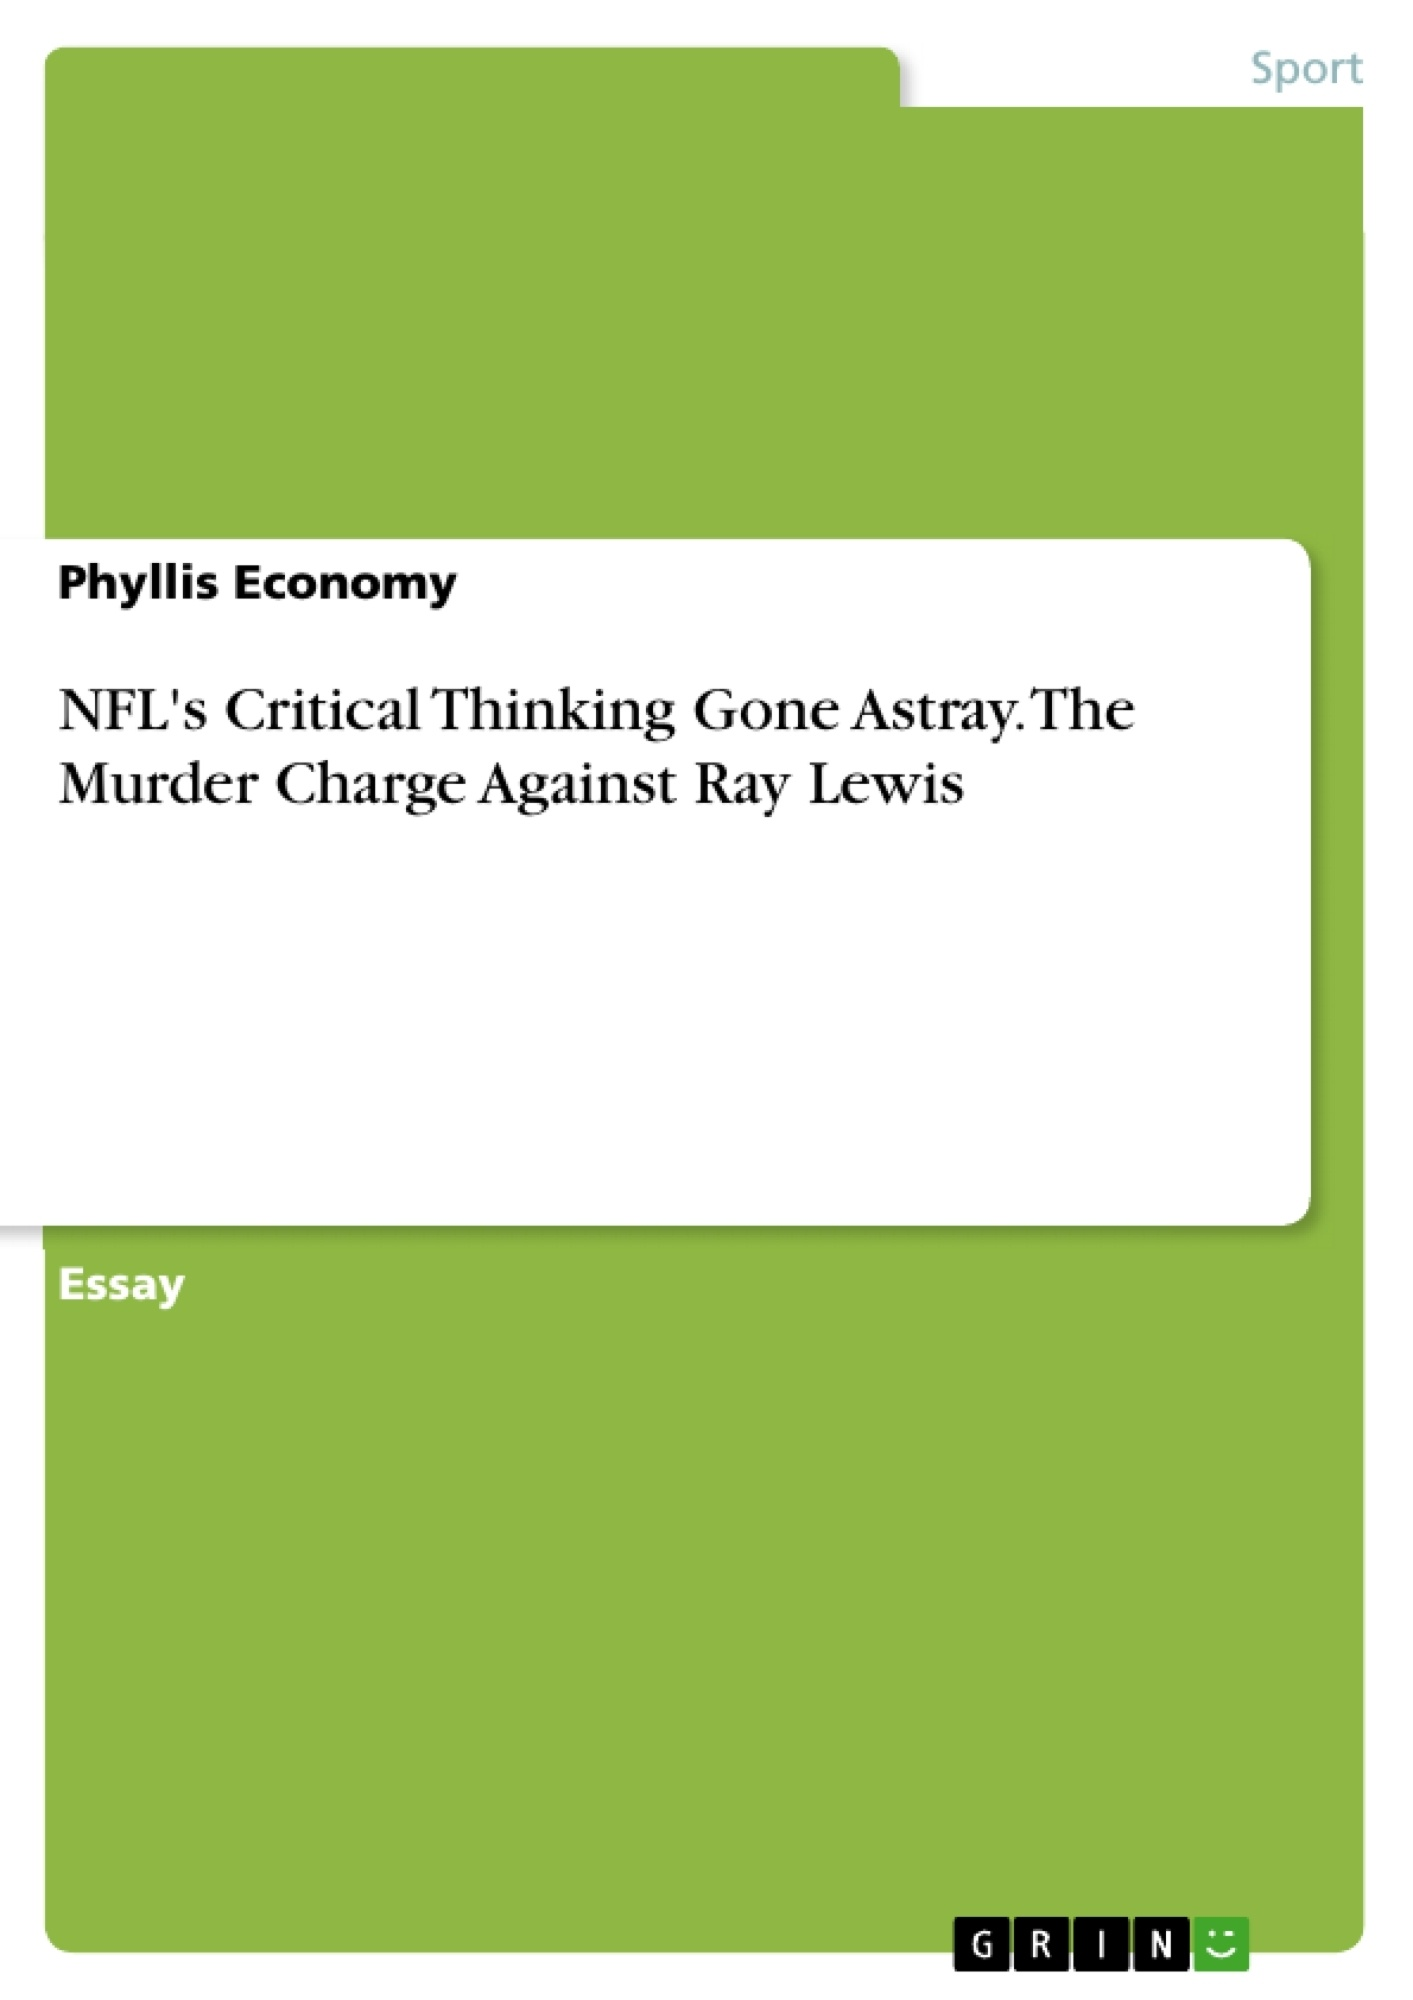 Title: NFL's Critical Thinking Gone Astray. The Murder Charge Against Ray Lewis